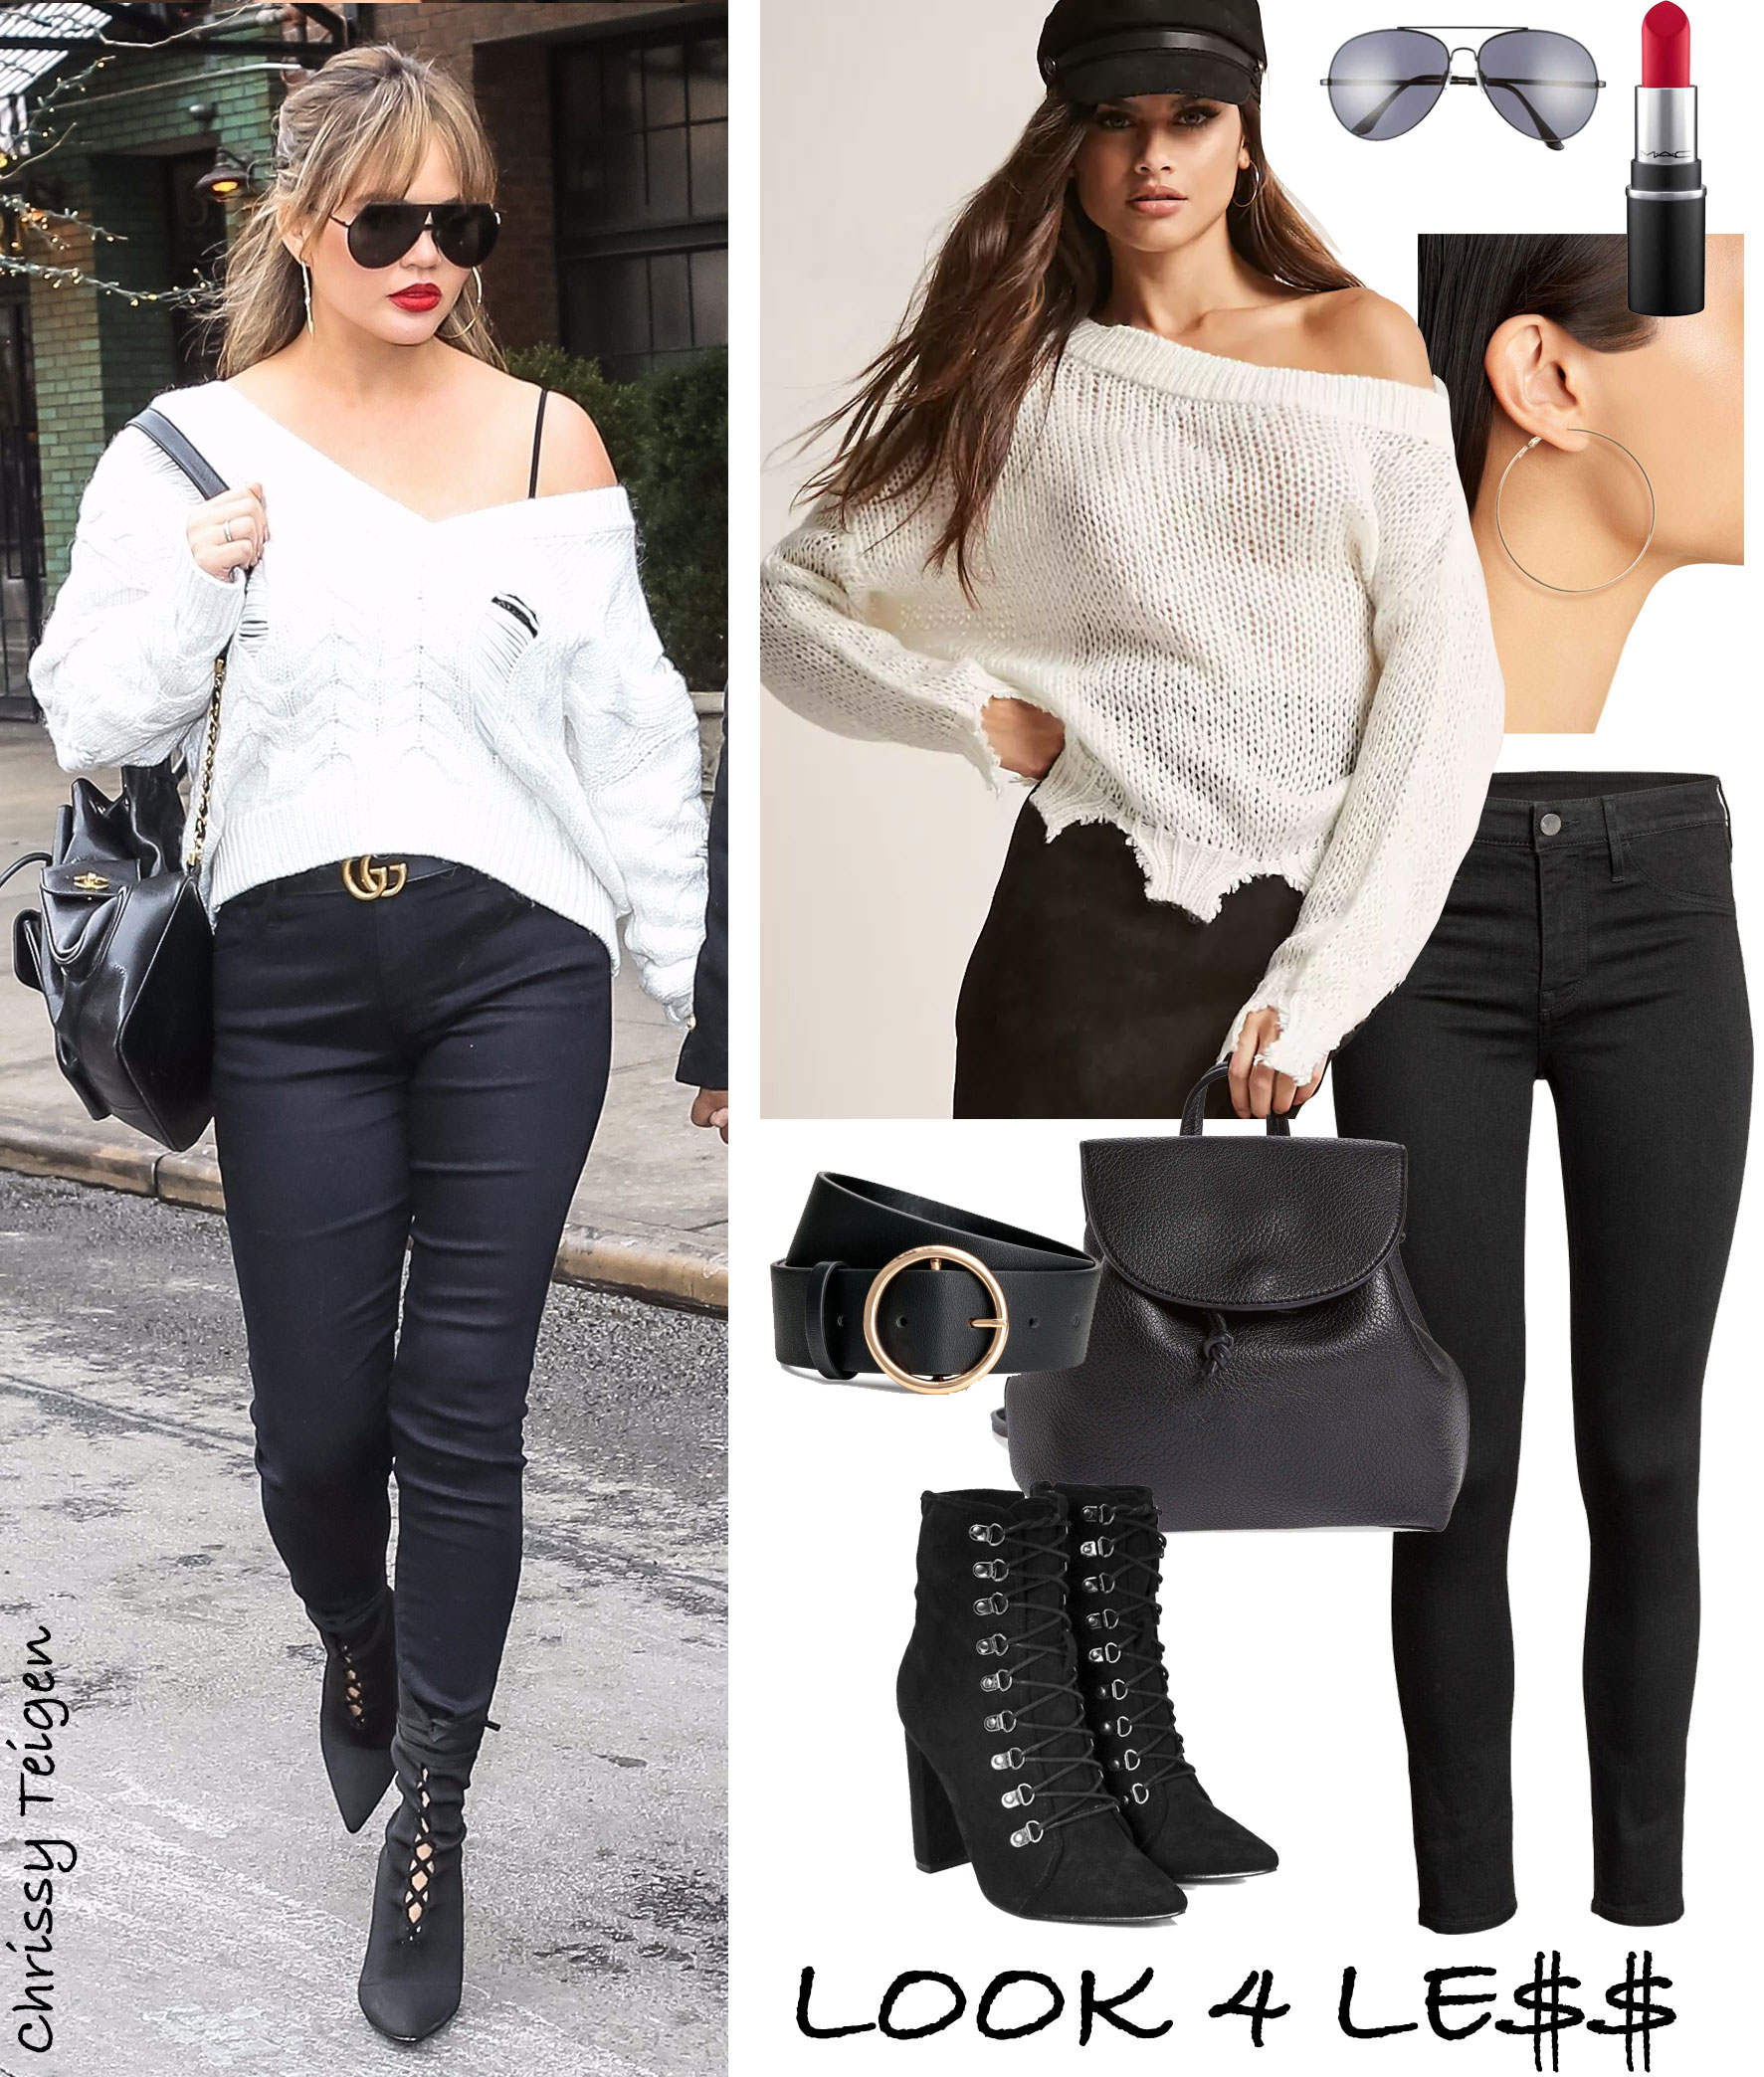 Chrissy Teigen wears a distressed white v-neck sweater with black skinny jeans and black lace-up ankle boots.